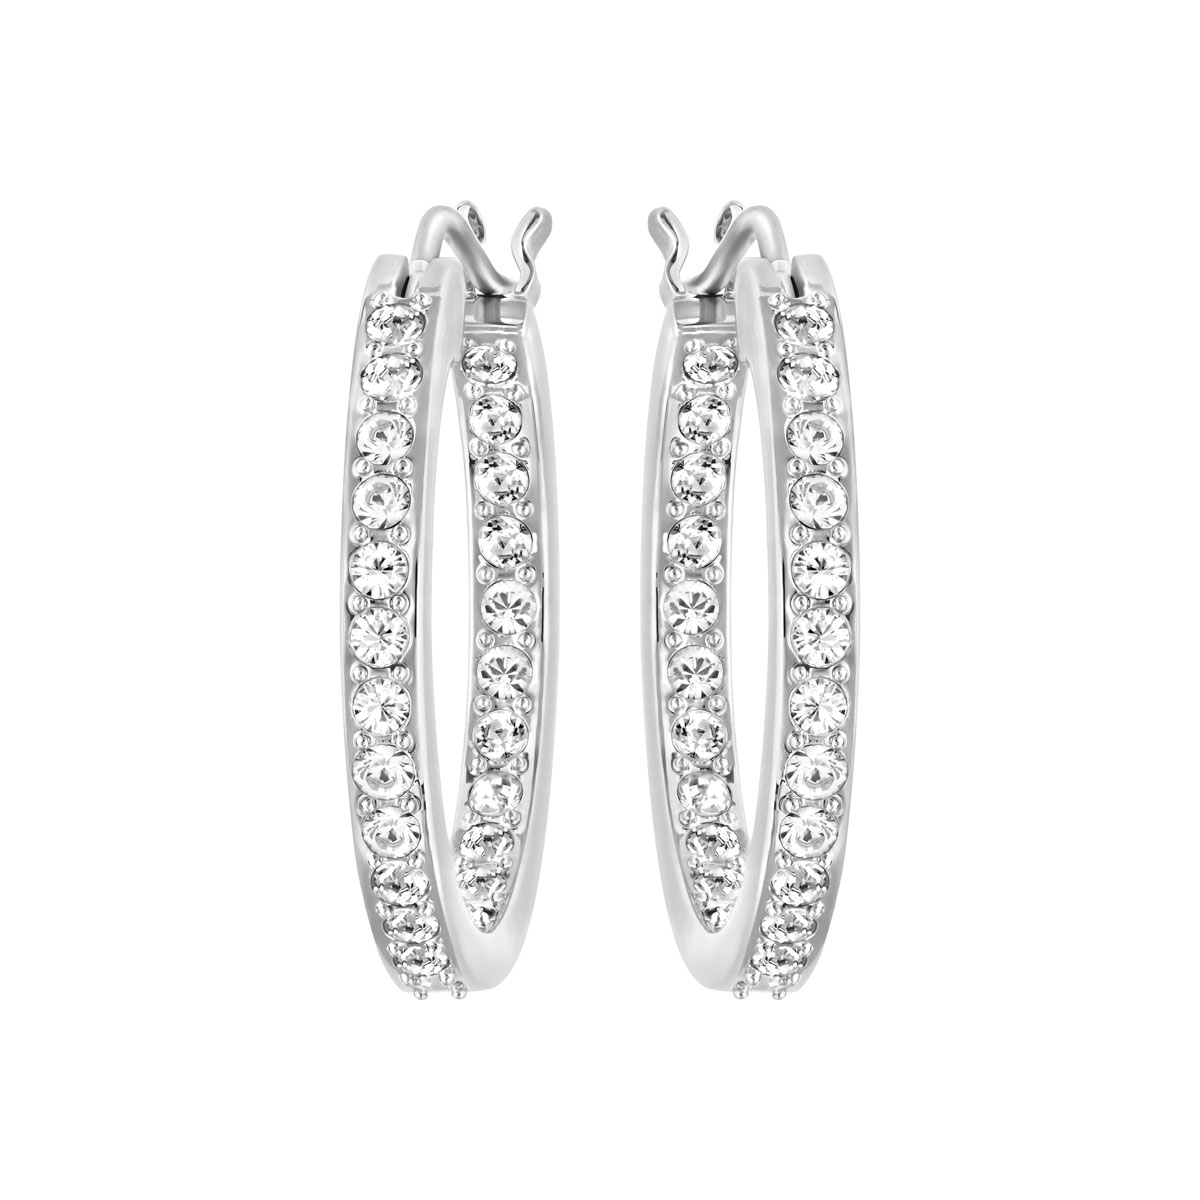 Swarovski Sommerset White and Rhodium Pierced Earrings